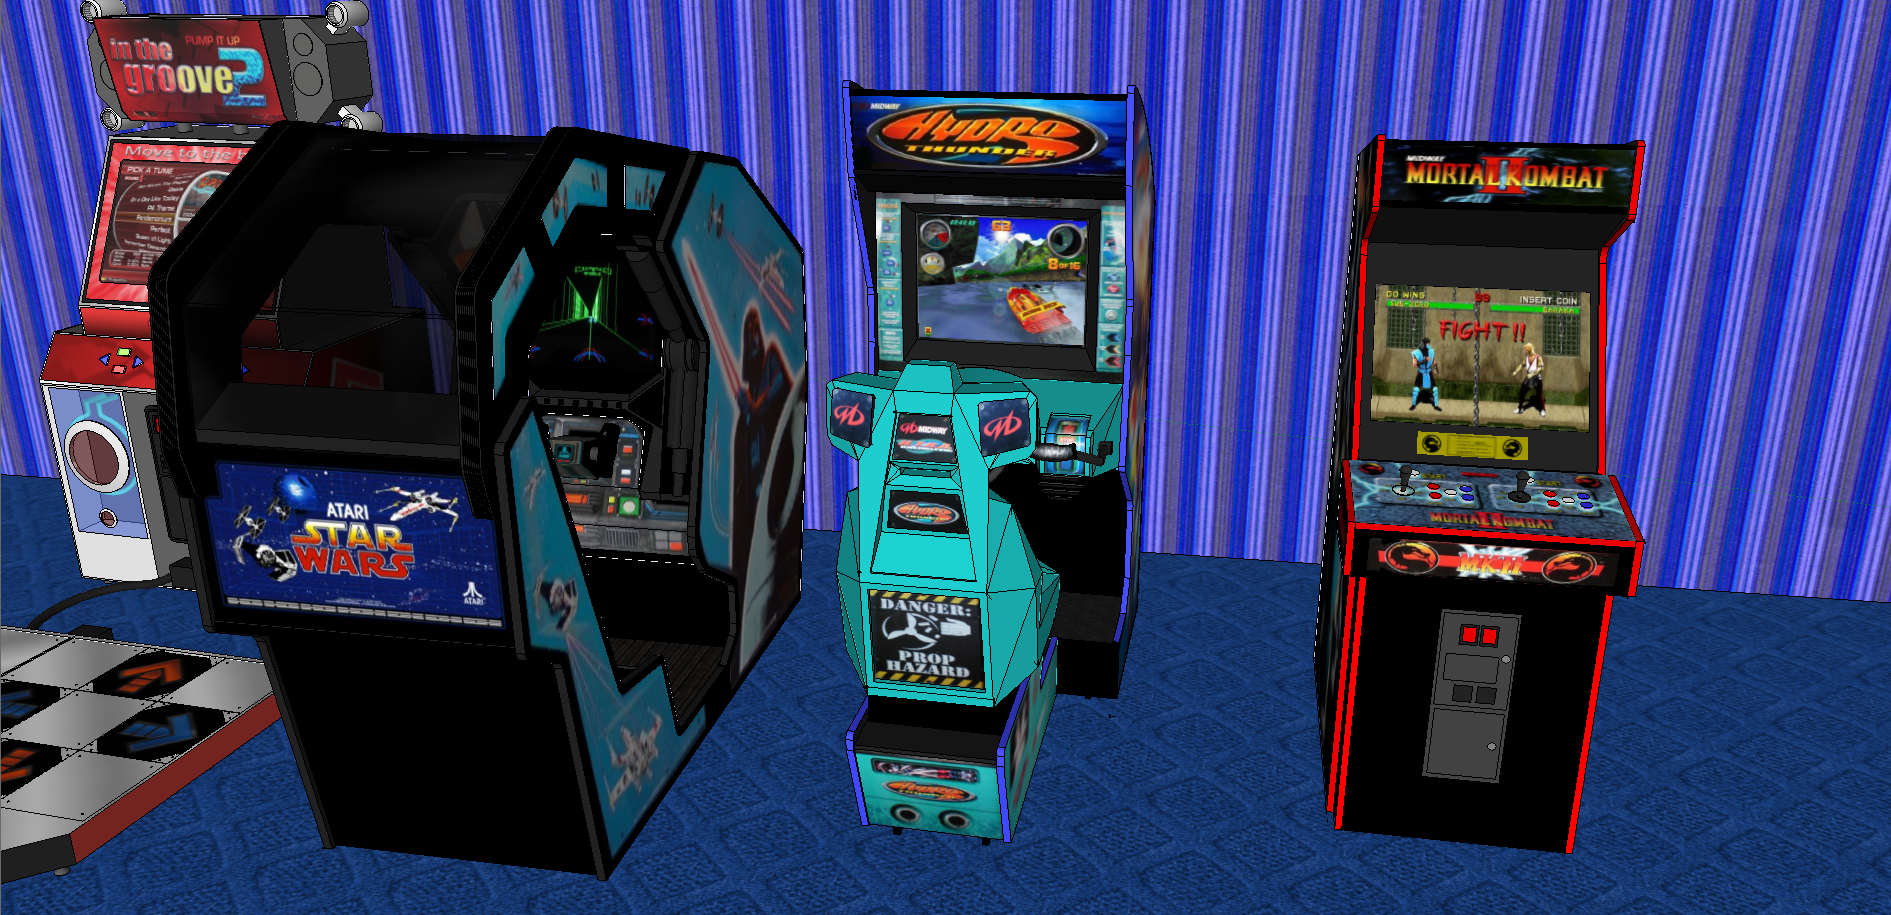 Picture of Arcade Machines